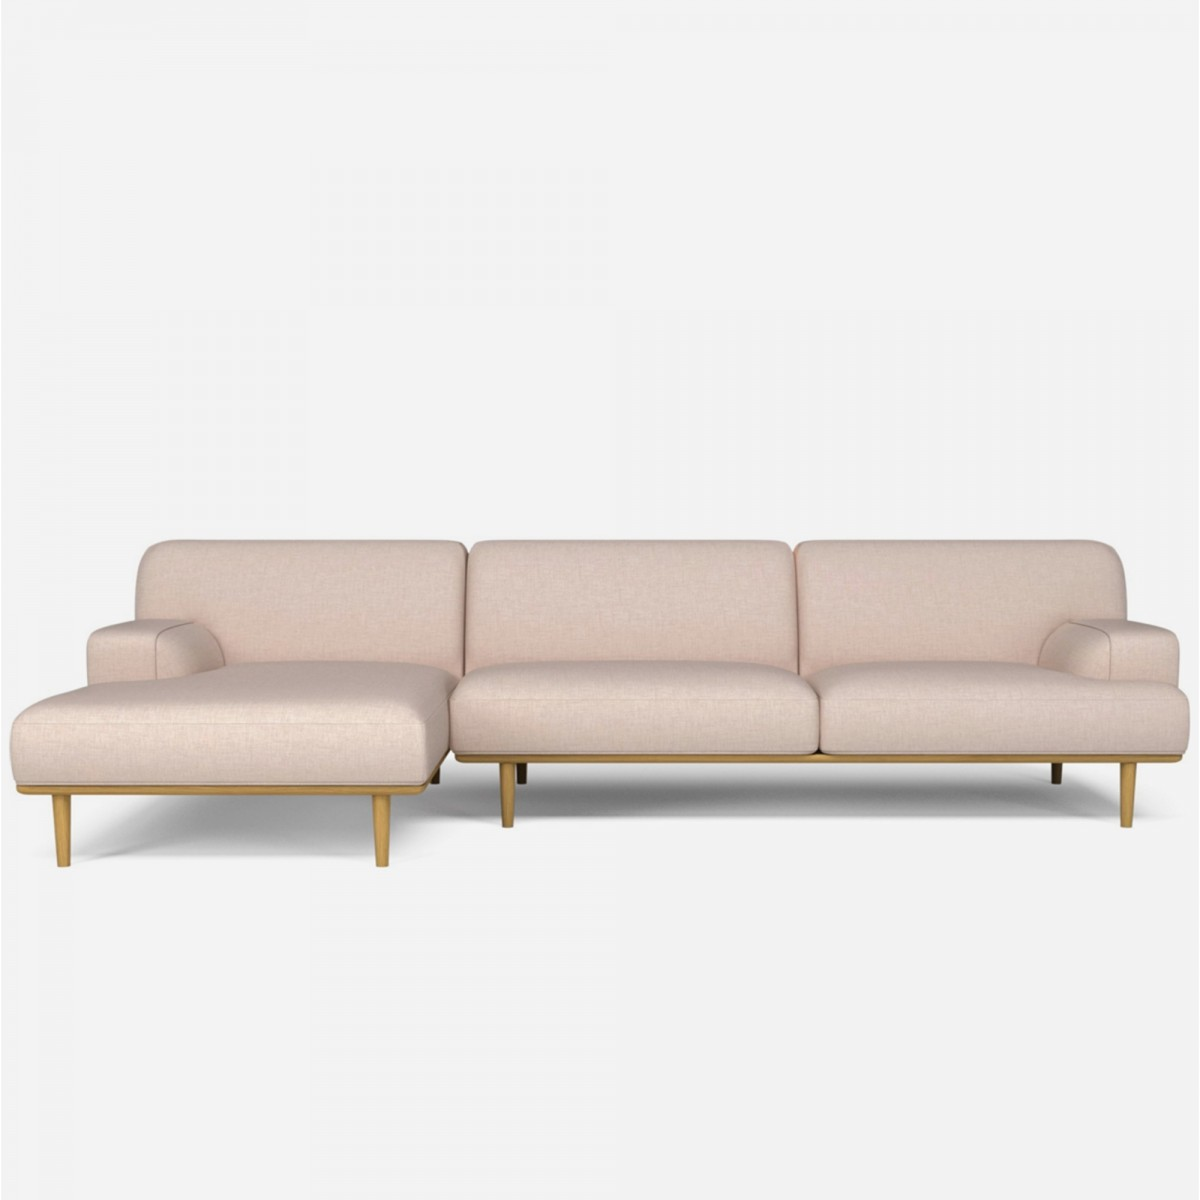 Madison with chaise longue bolia for Chaise longue sofa